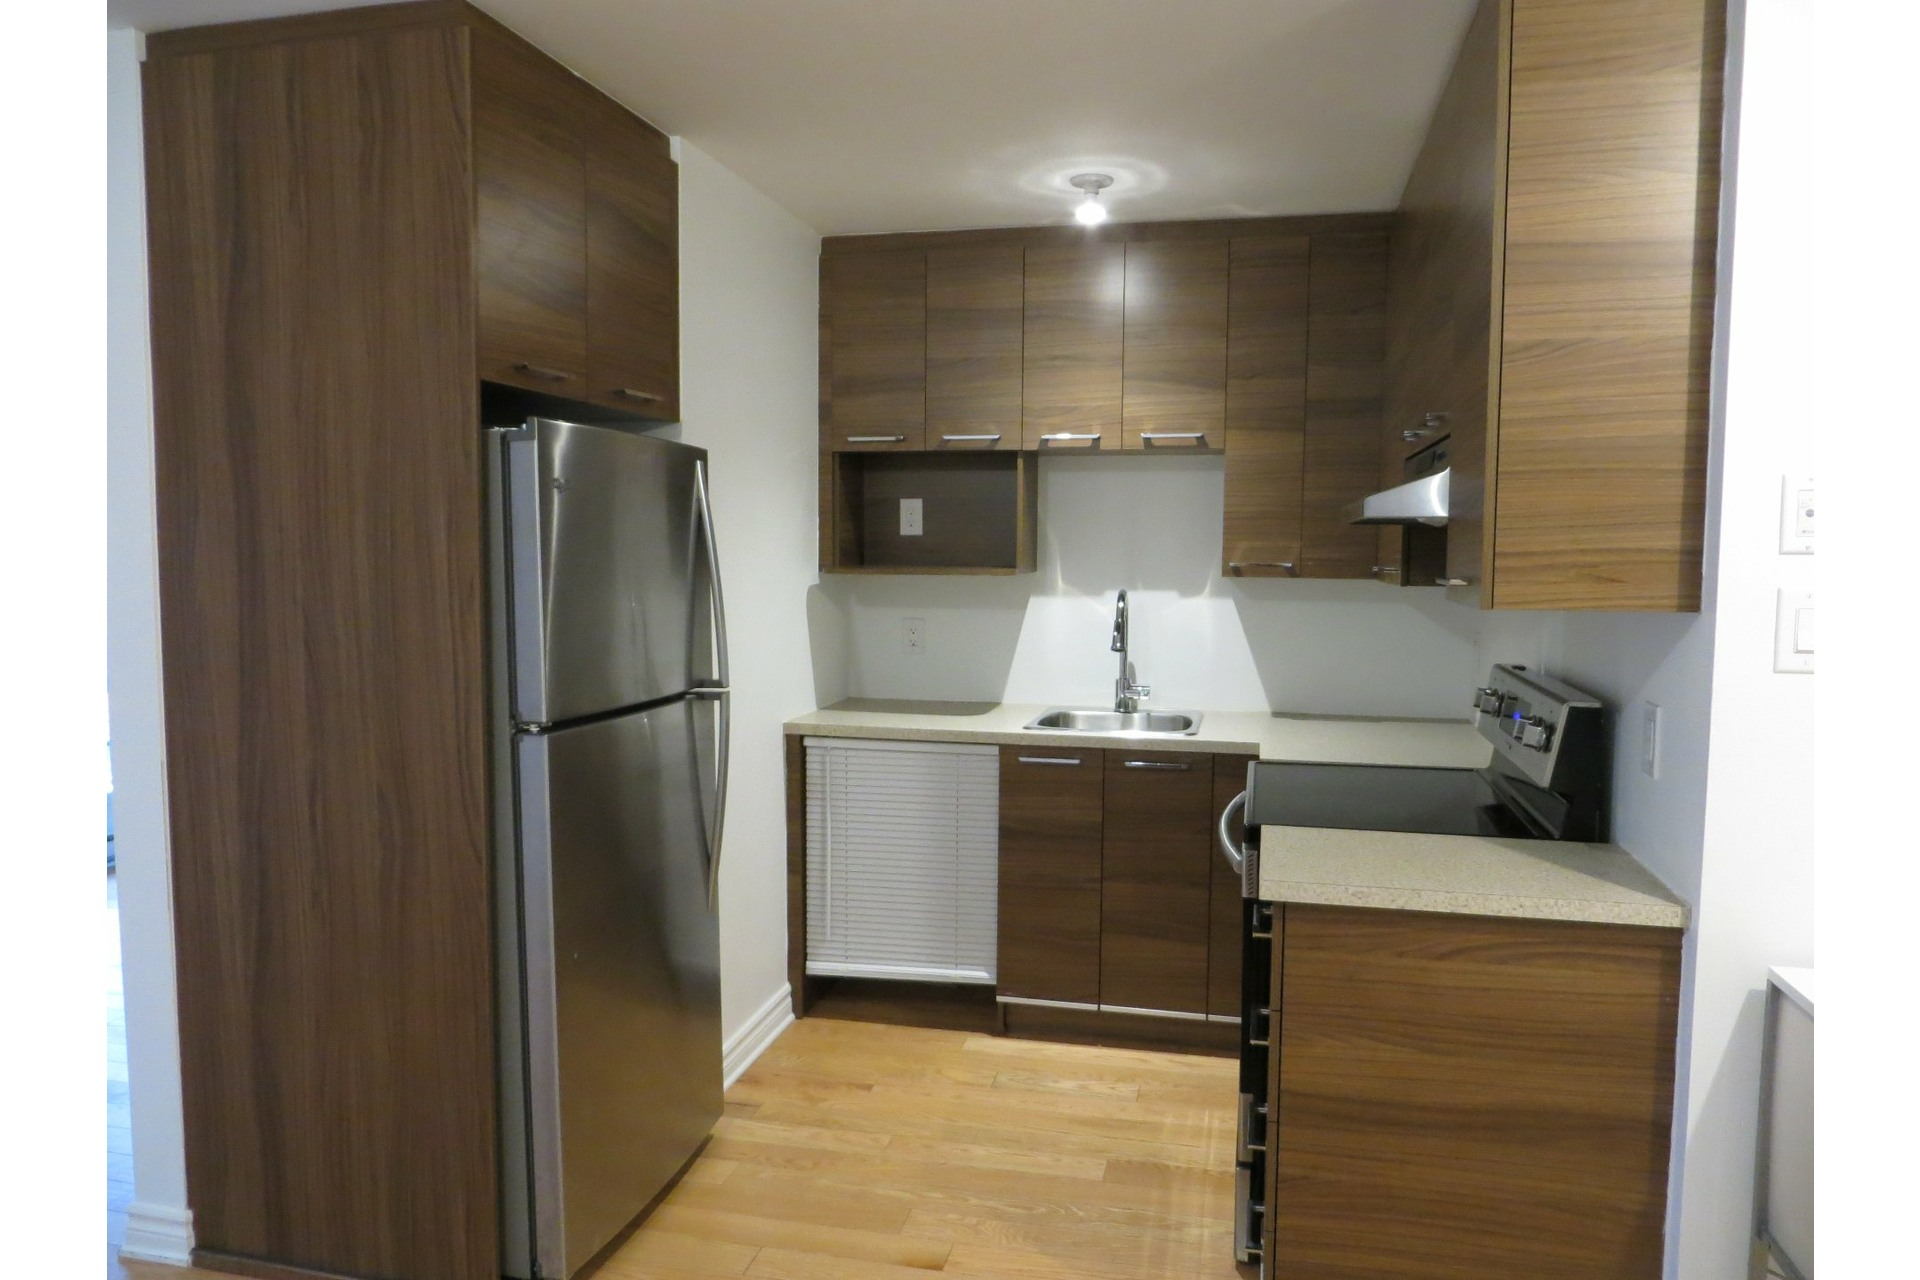 image 10 - Apartment For rent Laval-des-Rapides Laval  - 5 rooms